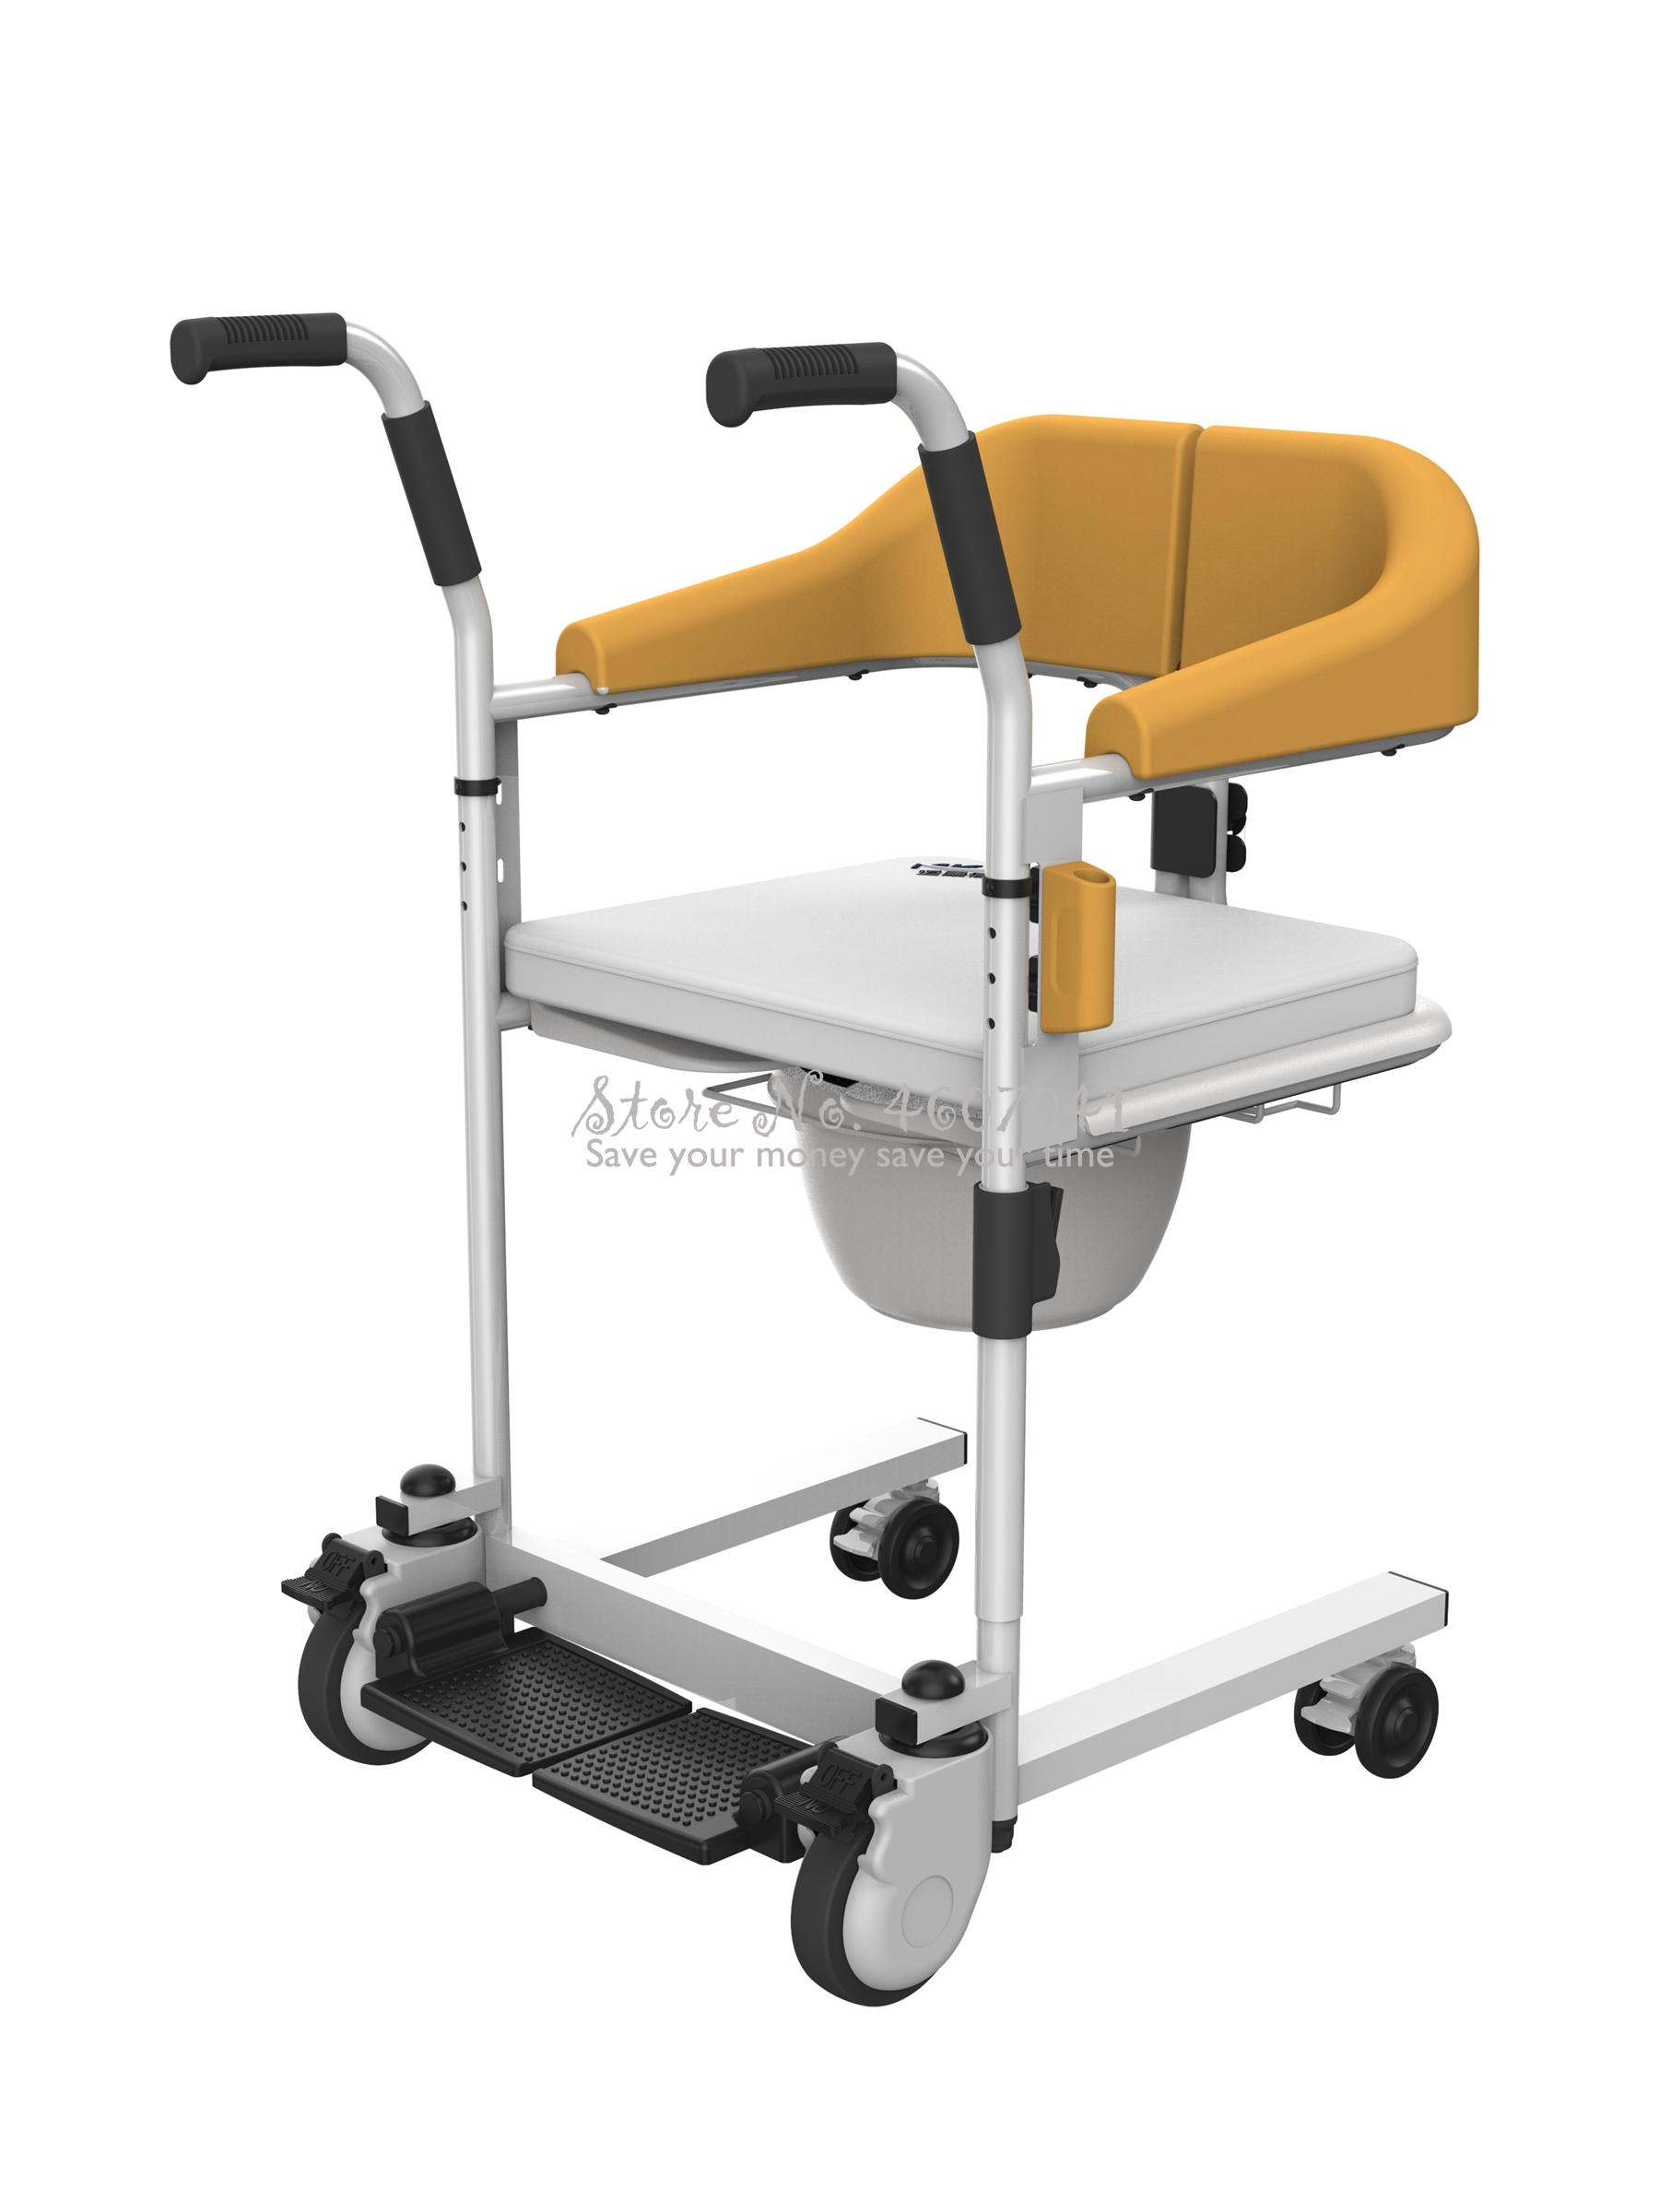 Multifunctional Elderly Care Wheelchair Stable Stroller Chair Patient Movement Machine Toilet Bath Chairs Bearing 120kg